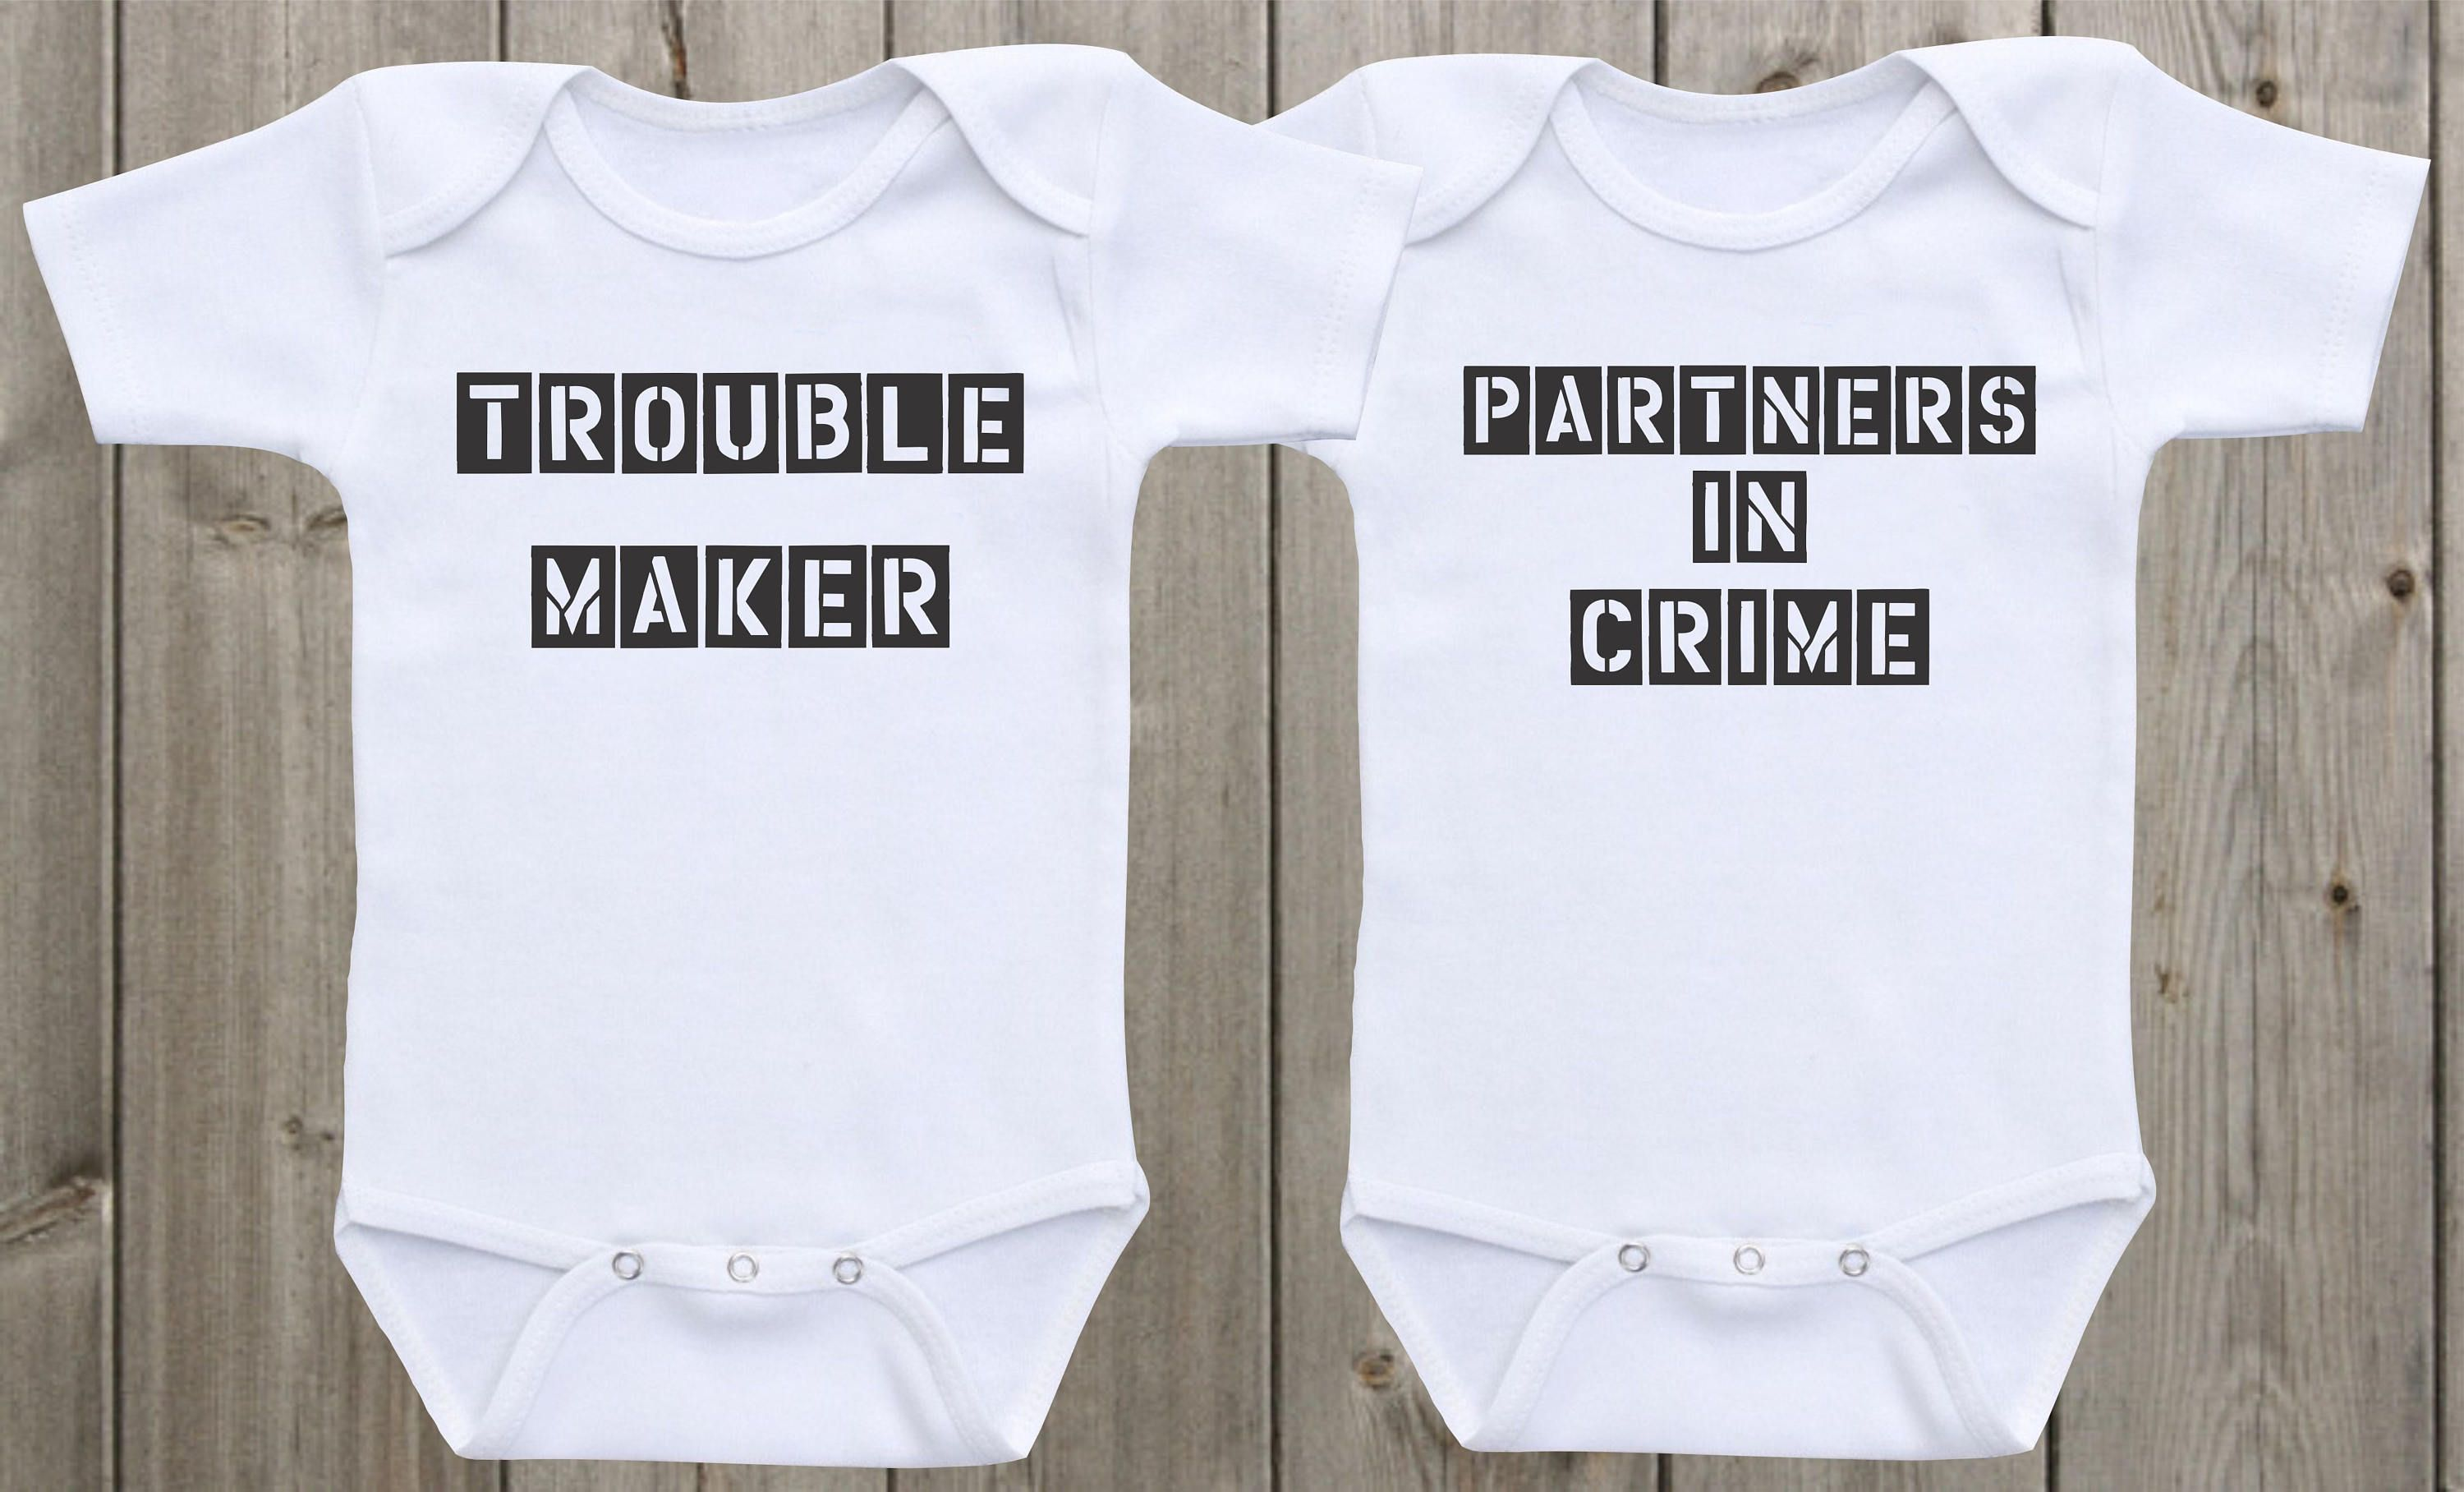 Twin Baby esies Trouble Maker Partners in Crime Baby Shirts Funny